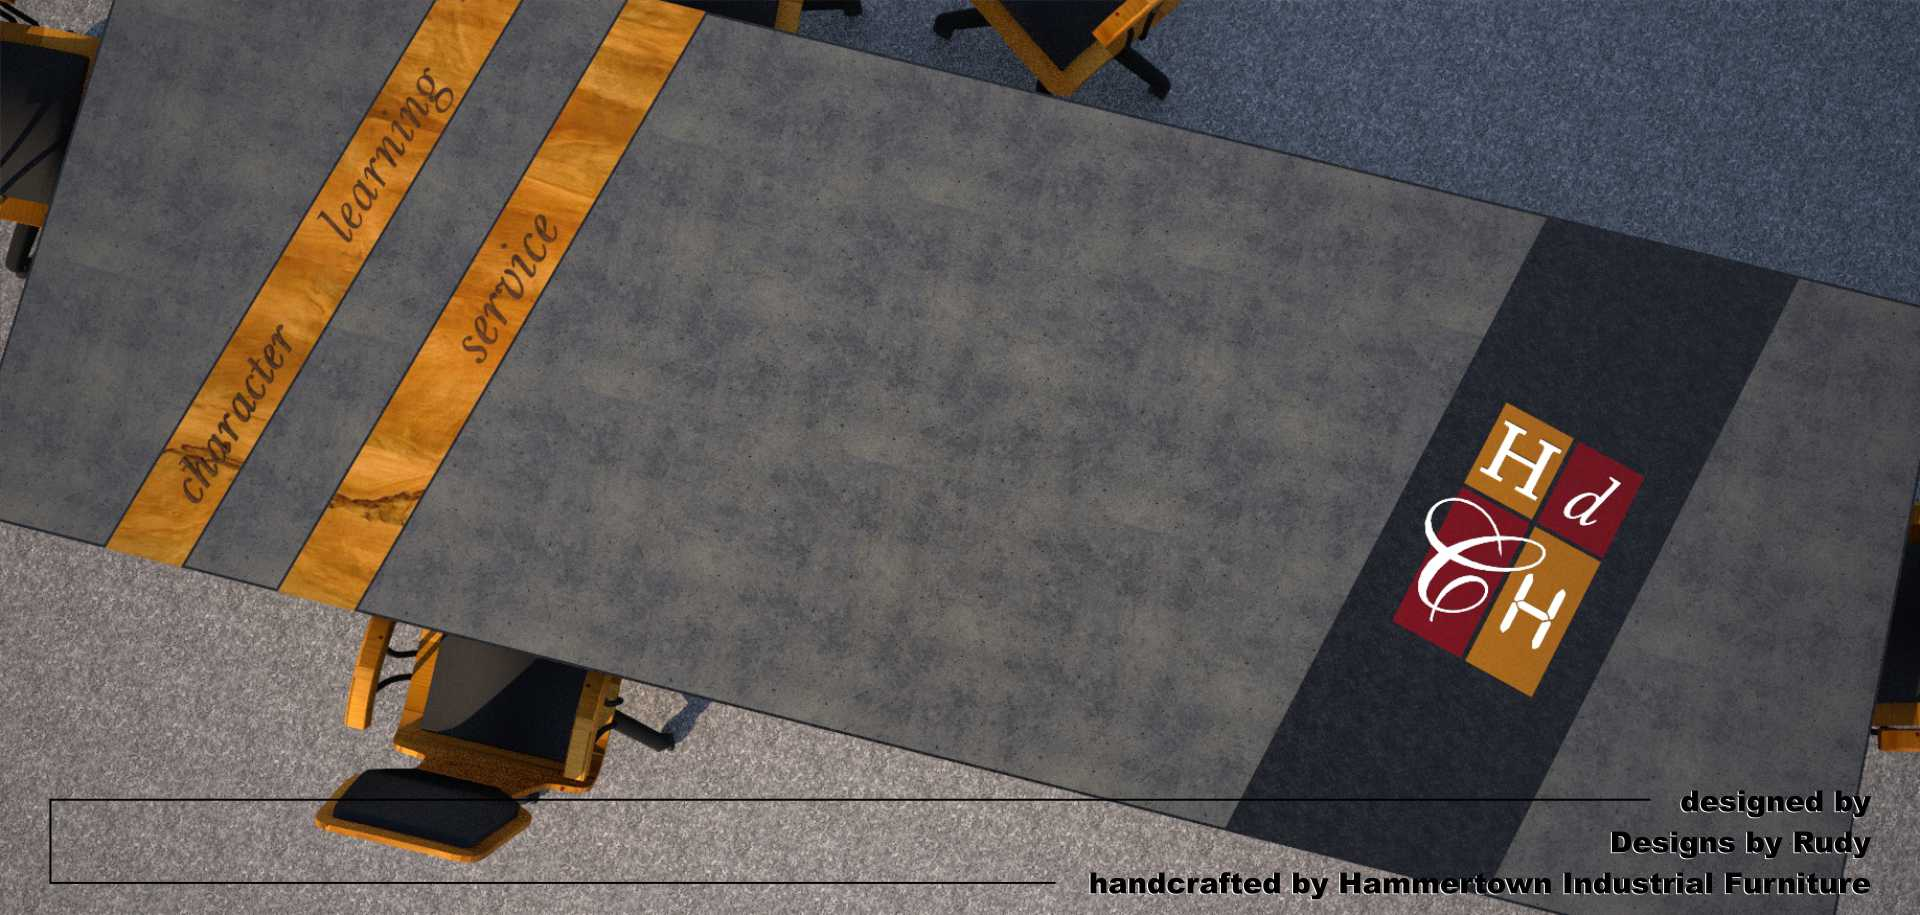 Concrete Conference table for HDCH, designed by Designs by Rudy, top view